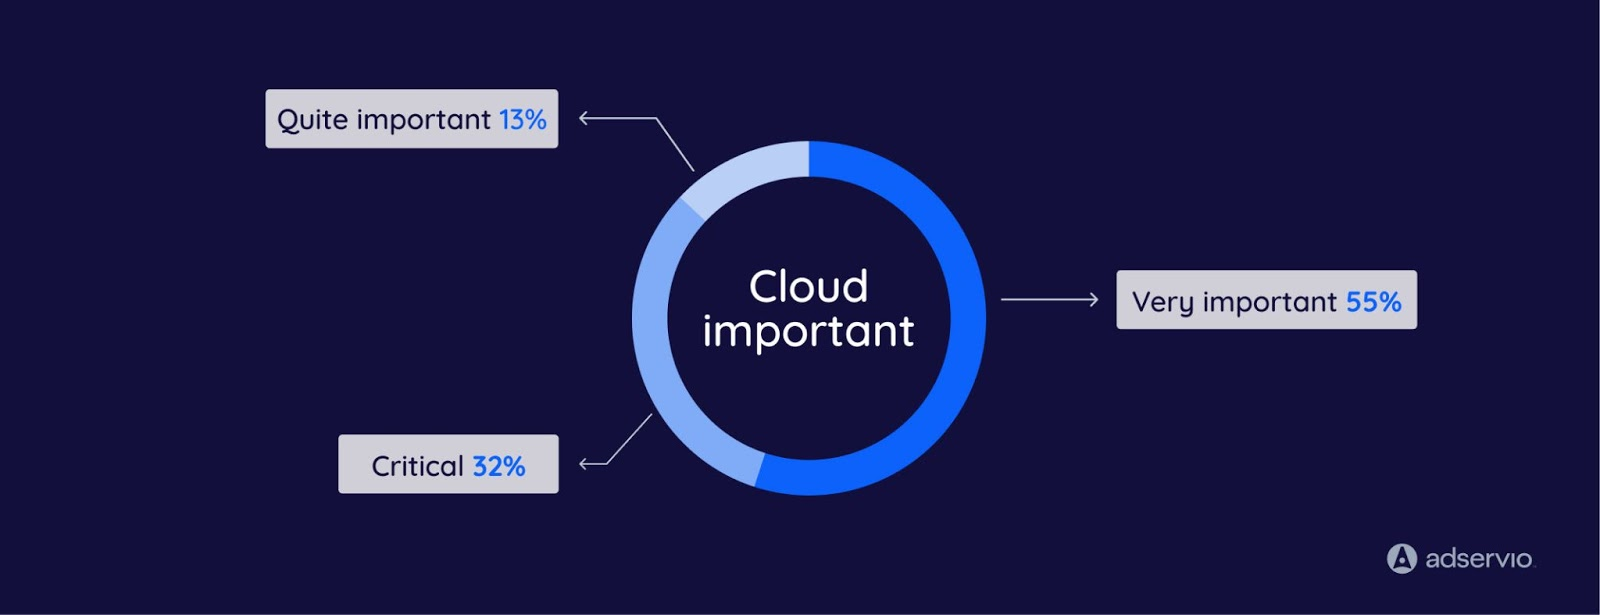 cloud migration to the organizations